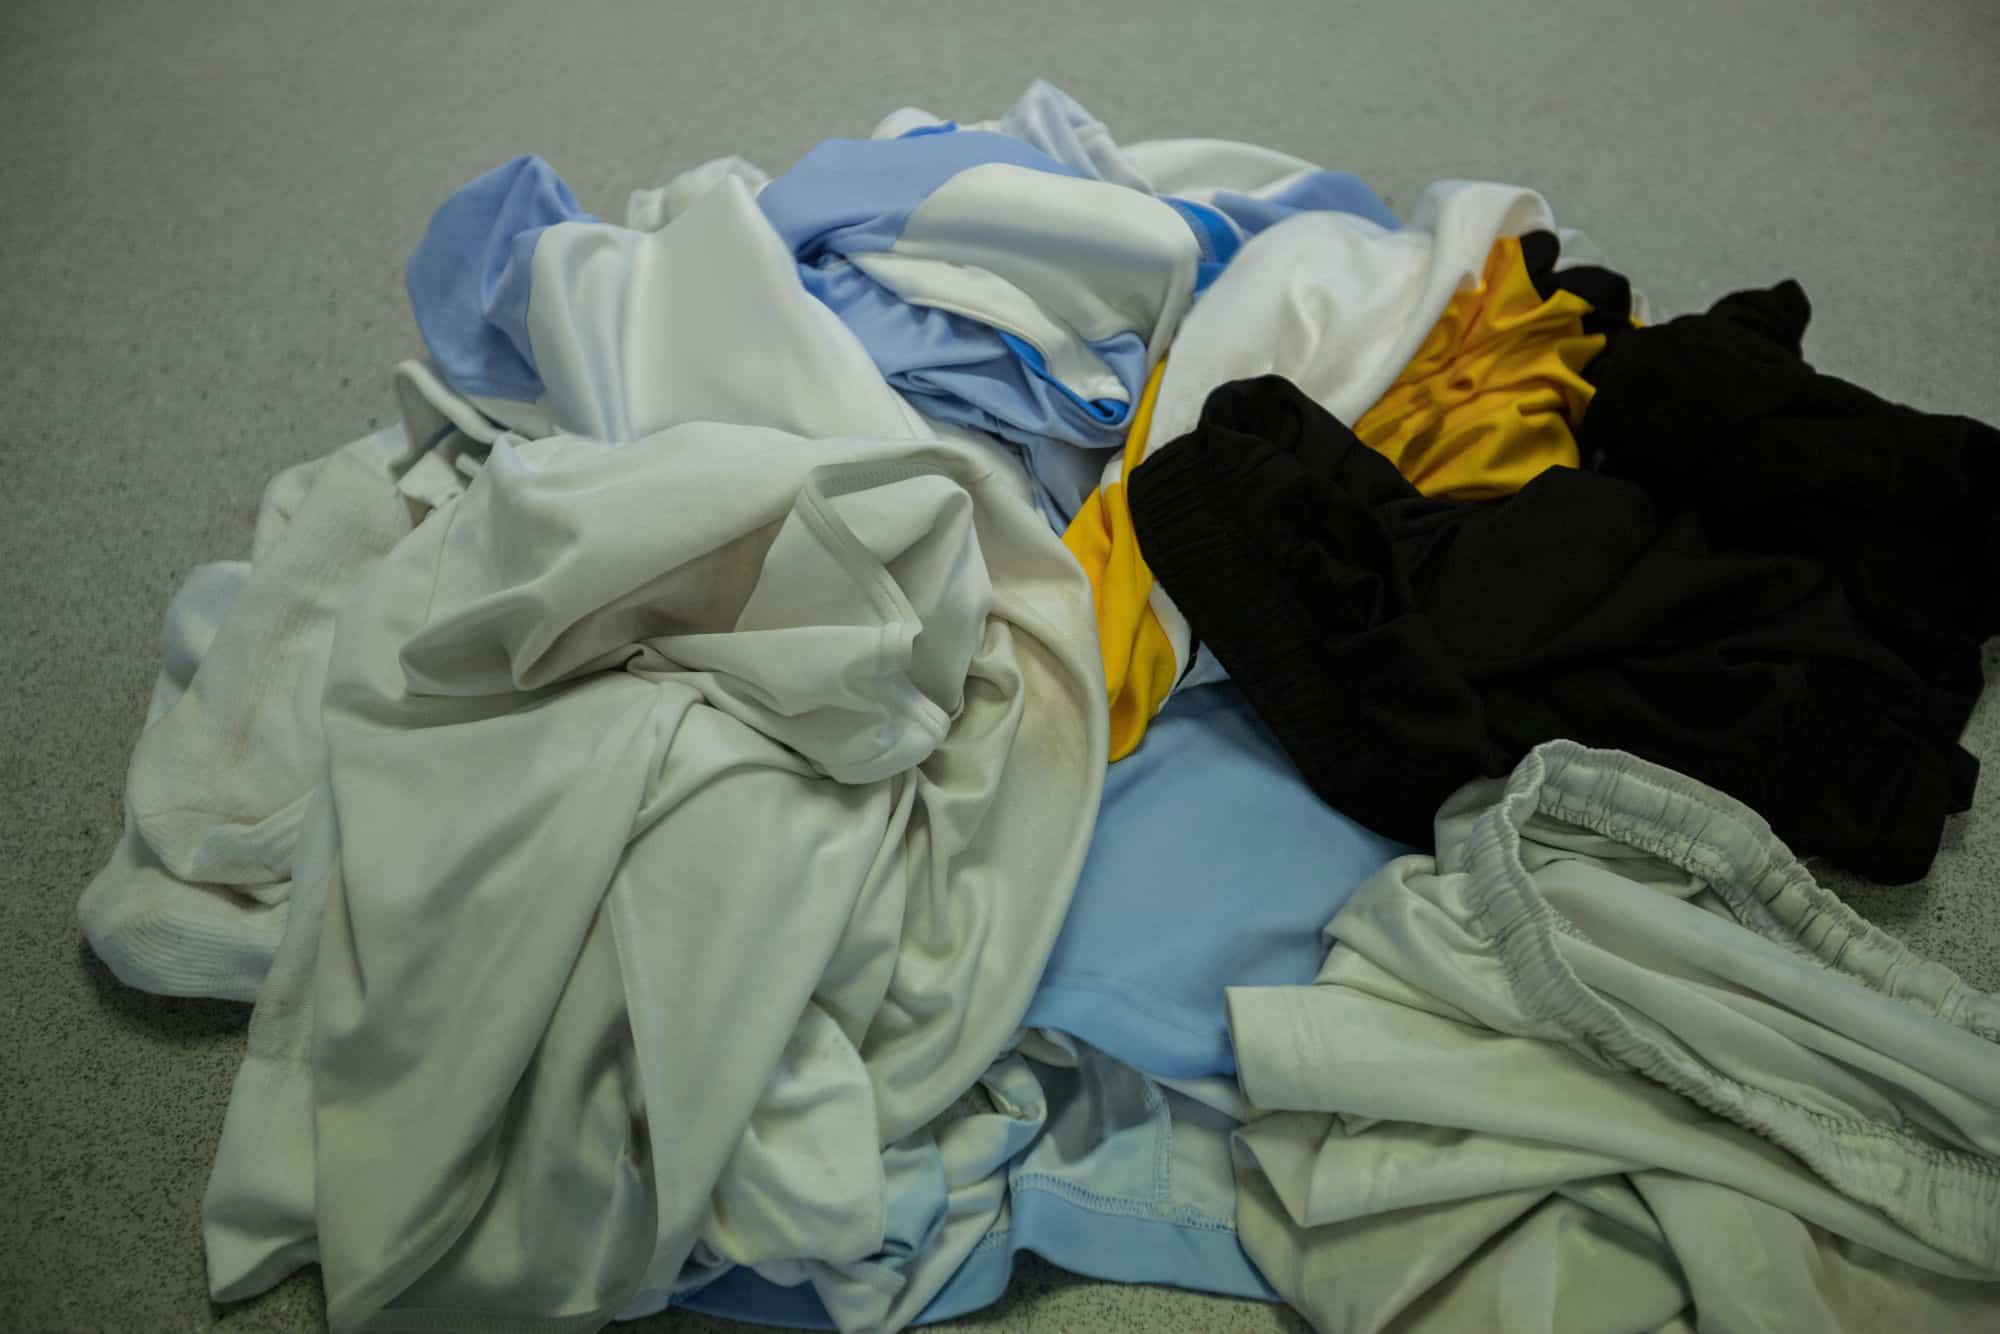 dirty-football-jerseys-dirty-clothes-messy-teens